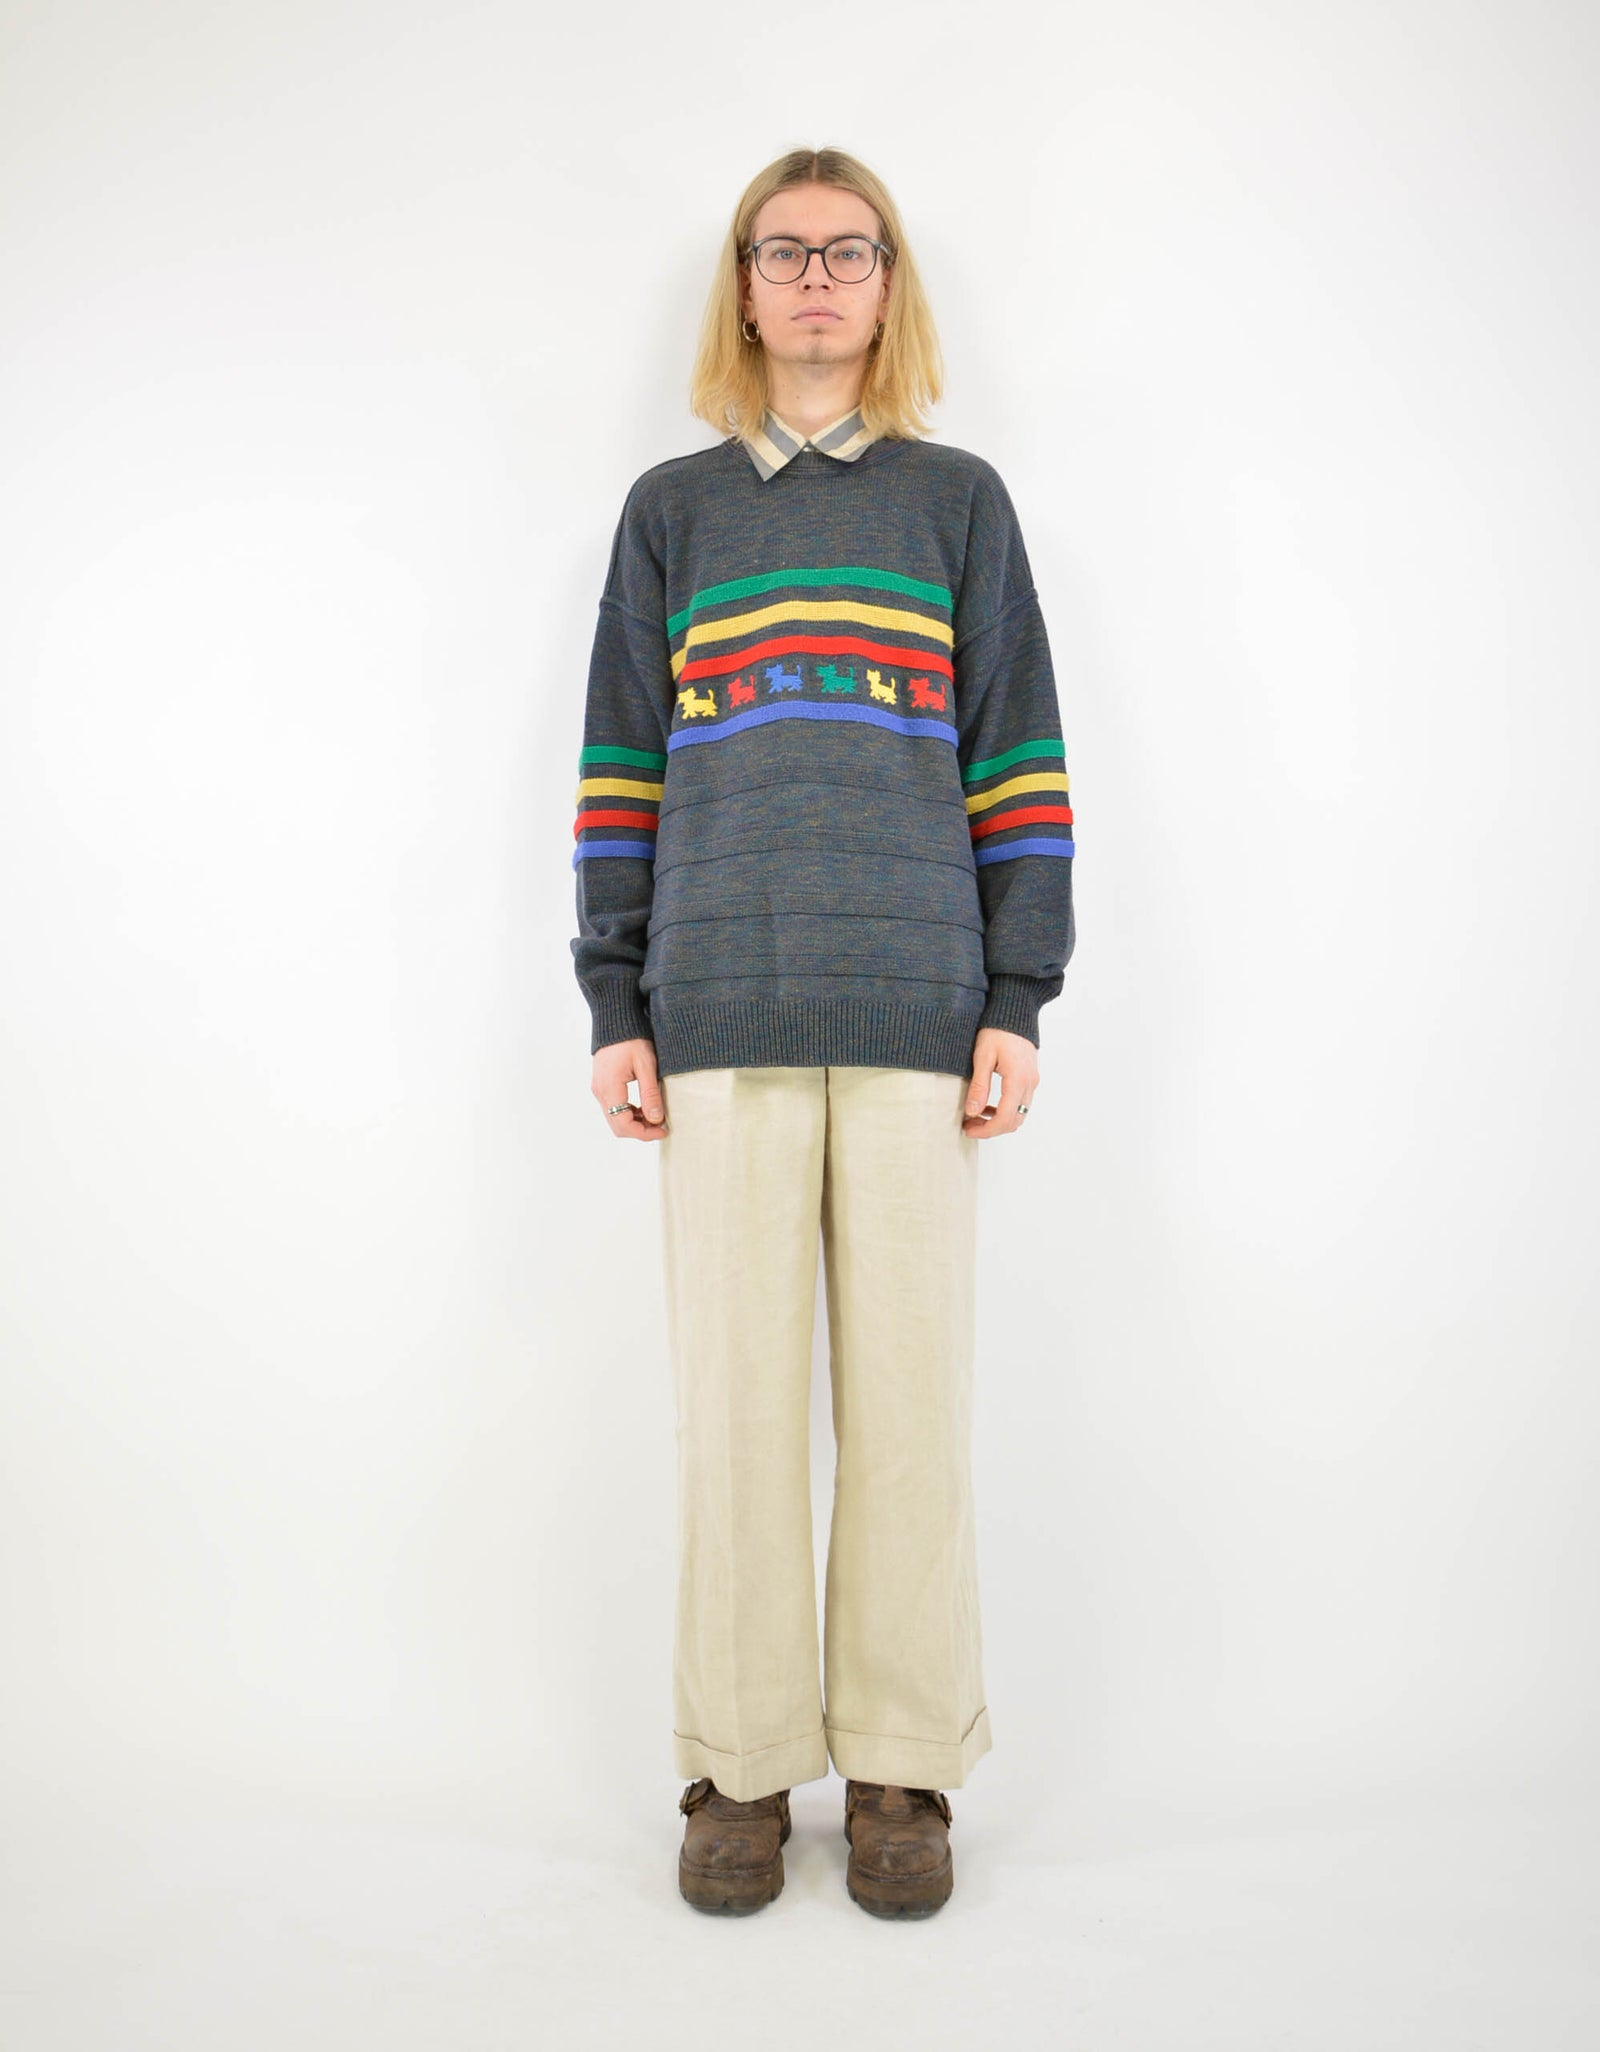 Colucci knitwear sweater - PICKNWEIGHT - VINTAGE KILO STORE